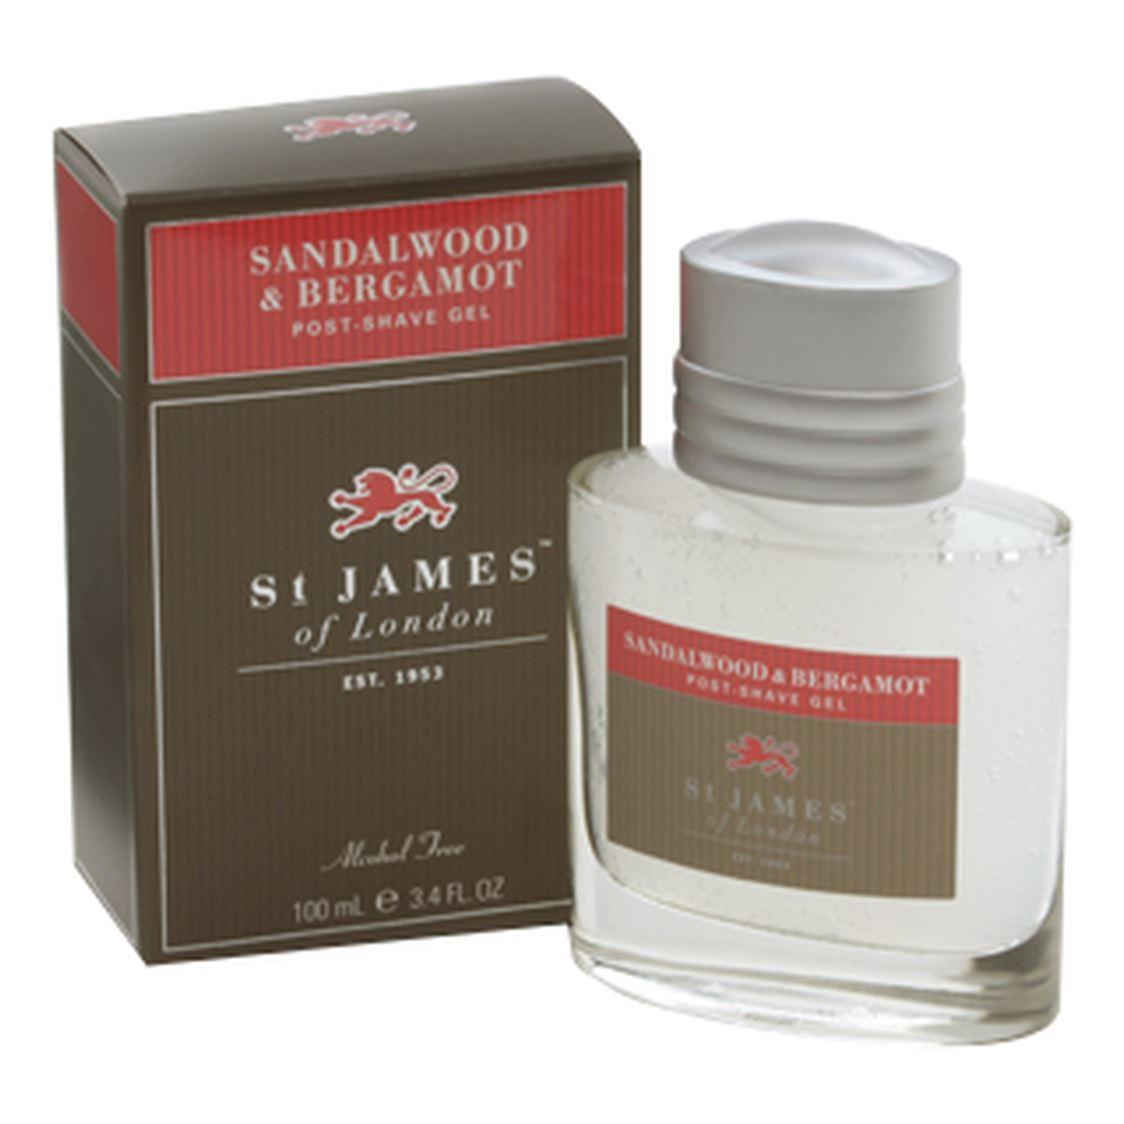 St James of London Sandalwood & Bergamot Large Post-Shave Gel